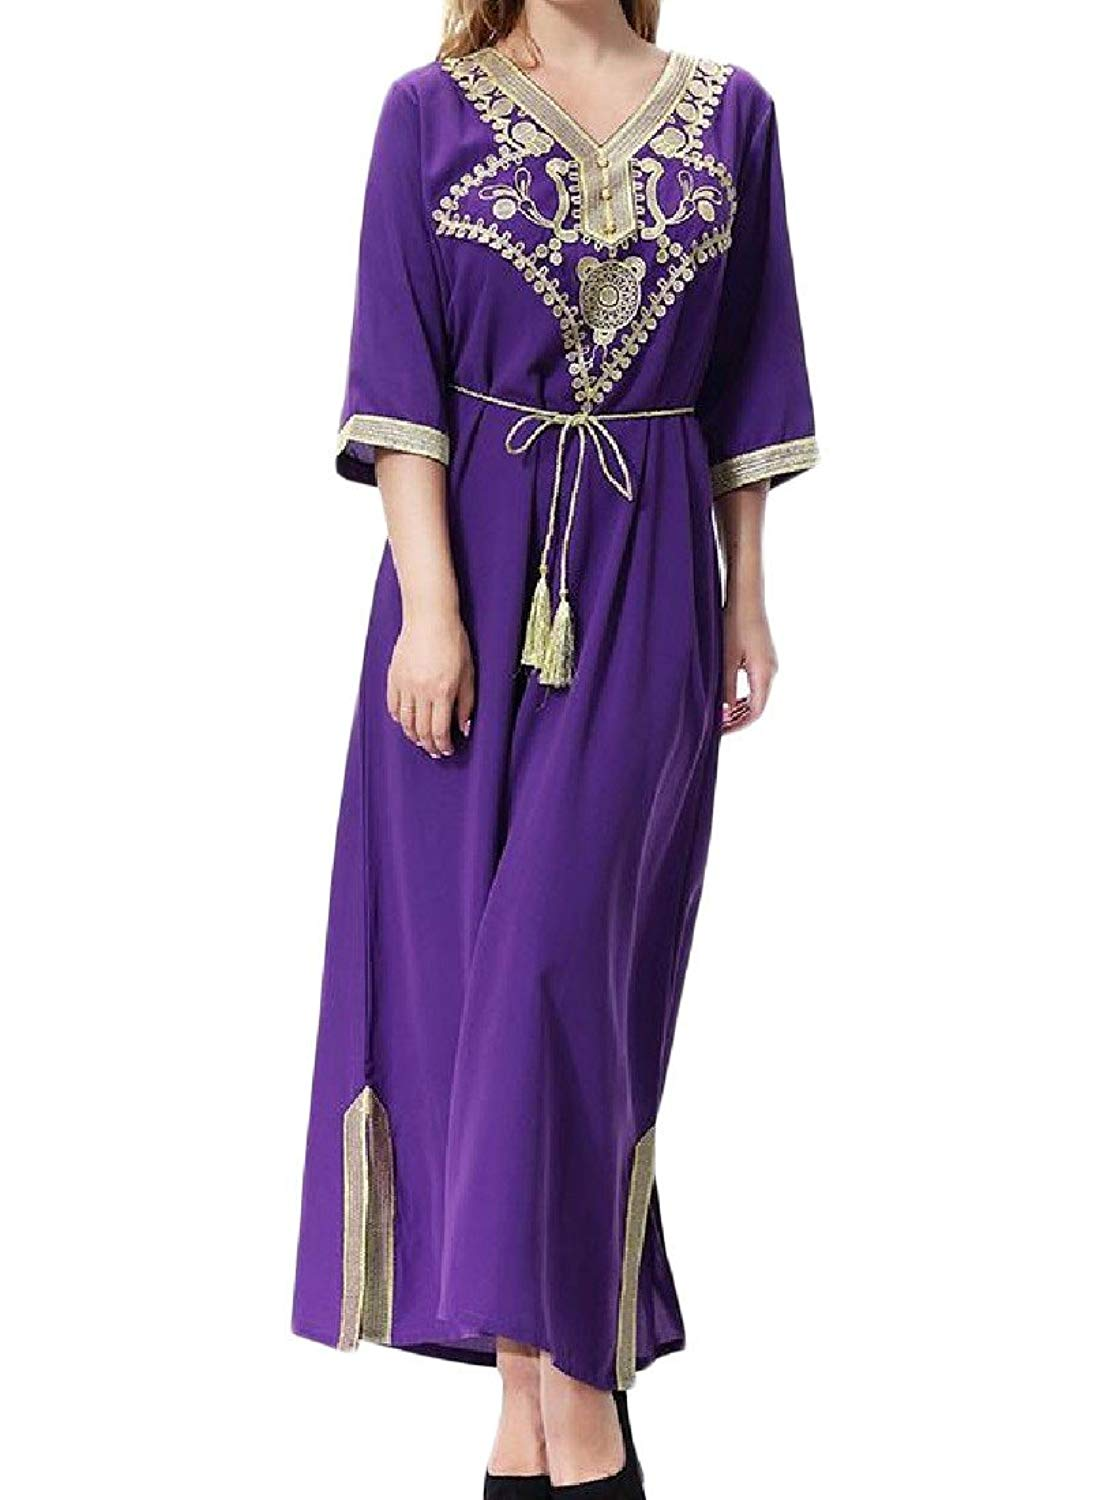 SHOWNO Women Lace Middle East Loose Muslim Long Sleeve Cardigan Robes Maxi Dress